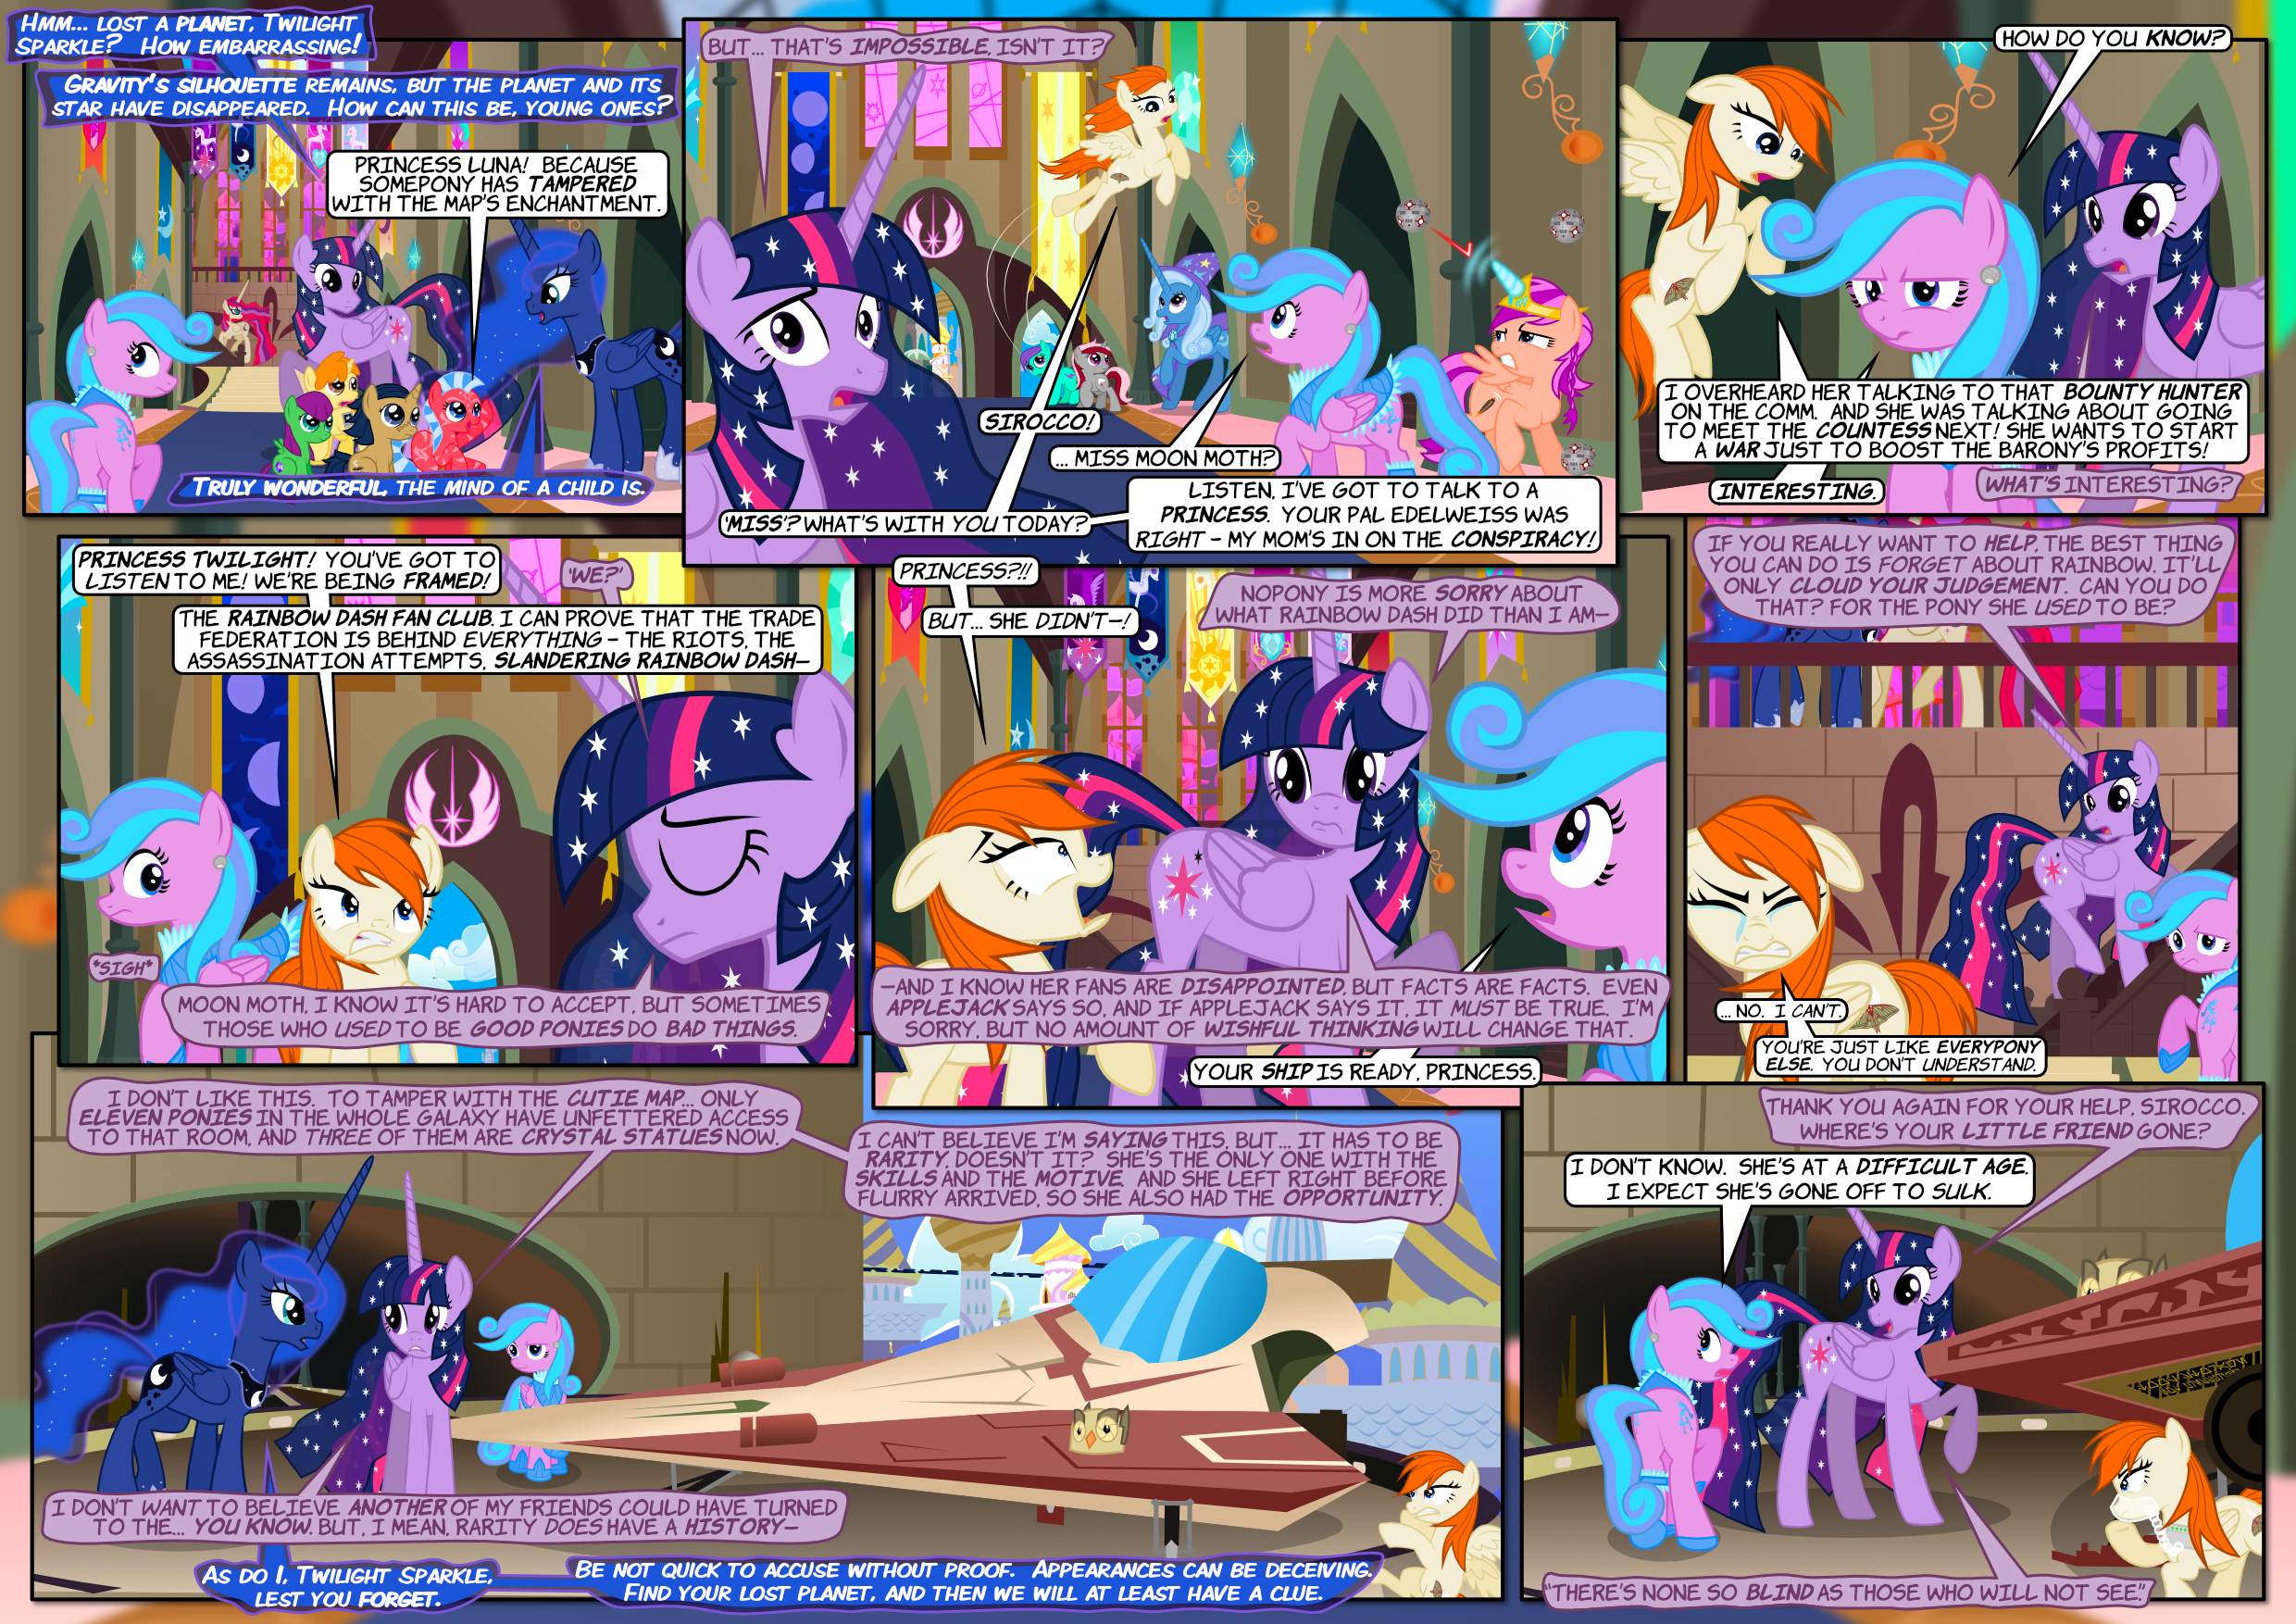 The Pone Wars 1.11: Lead a Horse to Water